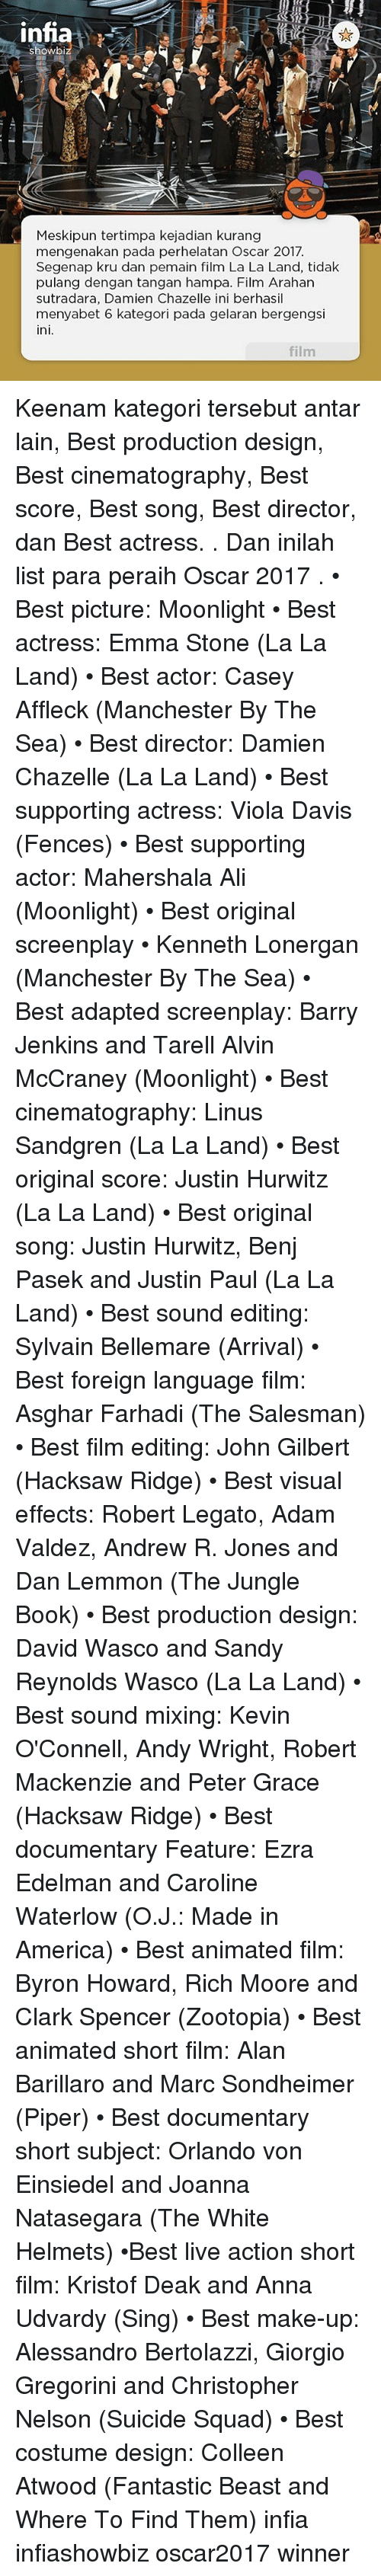 linus: infia  Meskipun tertimpa kejadian kurang  mengenakan pada perhelatan Oscar 2017.  Segenap kru dan pemain film La La Land, tidak  pulang dengan tangan hampa. Film Arahan  sutradara, Damien Chazelle ini berhasil  menyabet 6 kategori pada gelaran bergengsi  ini.  film Keenam kategori tersebut antar lain, Best production design, Best cinematography, Best score, Best song, Best director, dan Best actress. . Dan inilah list para peraih Oscar 2017 . • Best picture: Moonlight • Best actress: Emma Stone (La La Land) • Best actor: Casey Affleck (Manchester By The Sea) • Best director: Damien Chazelle (La La Land) • Best supporting actress: Viola Davis (Fences) • Best supporting actor: Mahershala Ali (Moonlight) • Best original screenplay • Kenneth Lonergan (Manchester By The Sea) • Best adapted screenplay: Barry Jenkins and Tarell Alvin McCraney (Moonlight) • Best cinematography: Linus Sandgren (La La Land) • Best original score: Justin Hurwitz (La La Land) • Best original song: Justin Hurwitz, Benj Pasek and Justin Paul (La La Land) • Best sound editing: Sylvain Bellemare (Arrival) • Best foreign language film: Asghar Farhadi (The Salesman) • Best film editing: John Gilbert (Hacksaw Ridge) • Best visual effects: Robert Legato, Adam Valdez, Andrew R. Jones and Dan Lemmon (The Jungle Book) • Best production design: David Wasco and Sandy Reynolds Wasco (La La Land) • Best sound mixing: Kevin O'Connell, Andy Wright, Robert Mackenzie and Peter Grace (Hacksaw Ridge) • Best documentary Feature: Ezra Edelman and Caroline Waterlow (O.J.: Made in America) • Best animated film: Byron Howard, Rich Moore and Clark Spencer (Zootopia) • Best animated short film: Alan Barillaro and Marc Sondheimer (Piper) • Best documentary short subject: Orlando von Einsiedel and Joanna Natasegara (The White Helmets) •Best live action short film: Kristof Deak and Anna Udvardy (Sing) • Best make-up: Alessandro Bertolazzi, Giorgio Gregorini and Christopher Nelson (Suicide Squad) • Best costume design: Colleen Atwood (Fantastic Beast and Where To Find Them) infia infiashowbiz oscar2017 winner